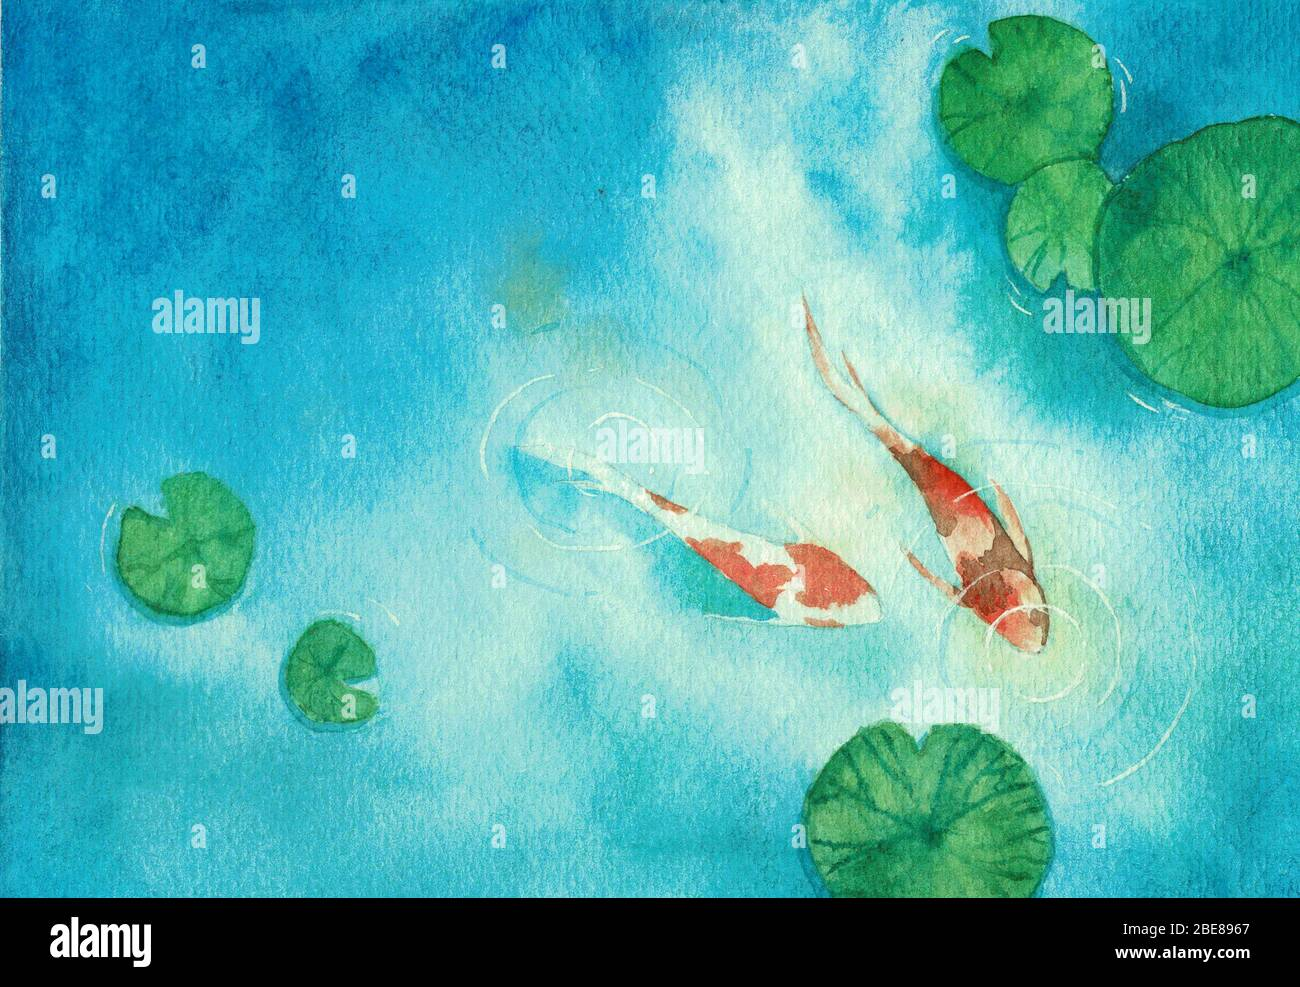 Watercolor Hand Painting Two Koi Carp Fish In A Pond The Symbol Of Good Luck And Prosperity Stock Photo Alamy